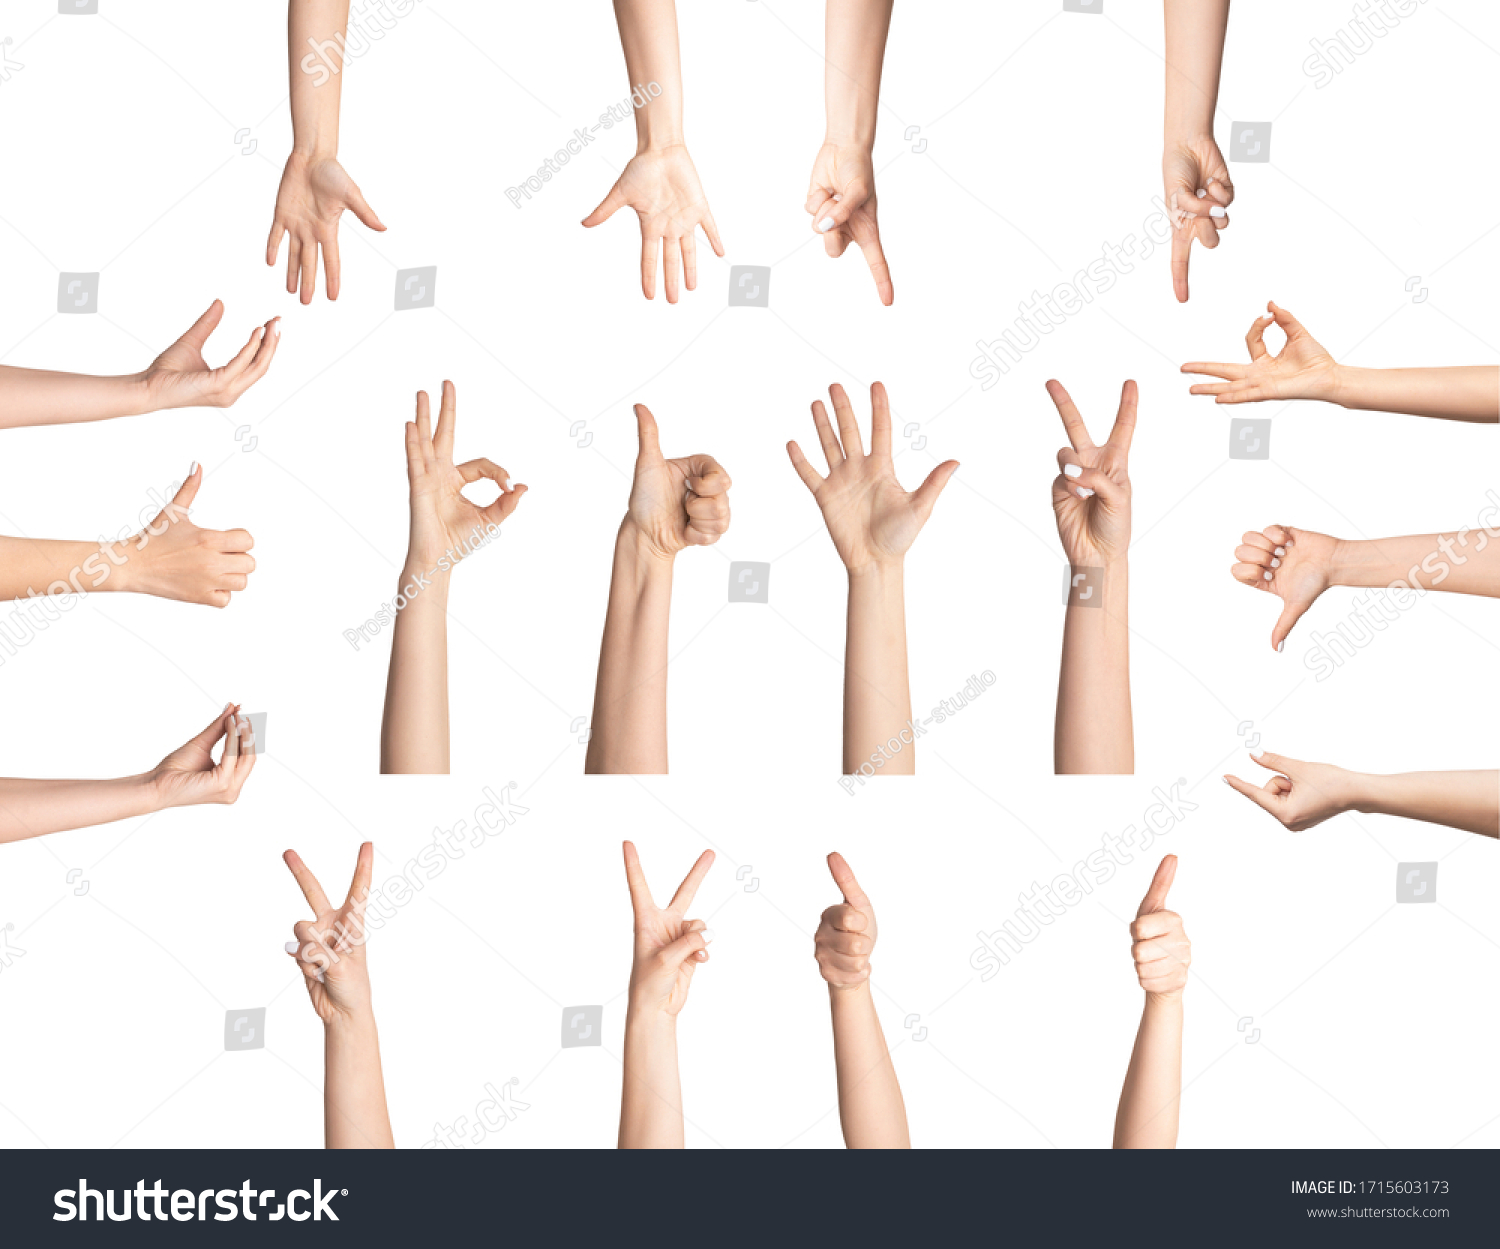 Sign language concept. Collage with female hands showing different gestures on white background, isolated #1715603173